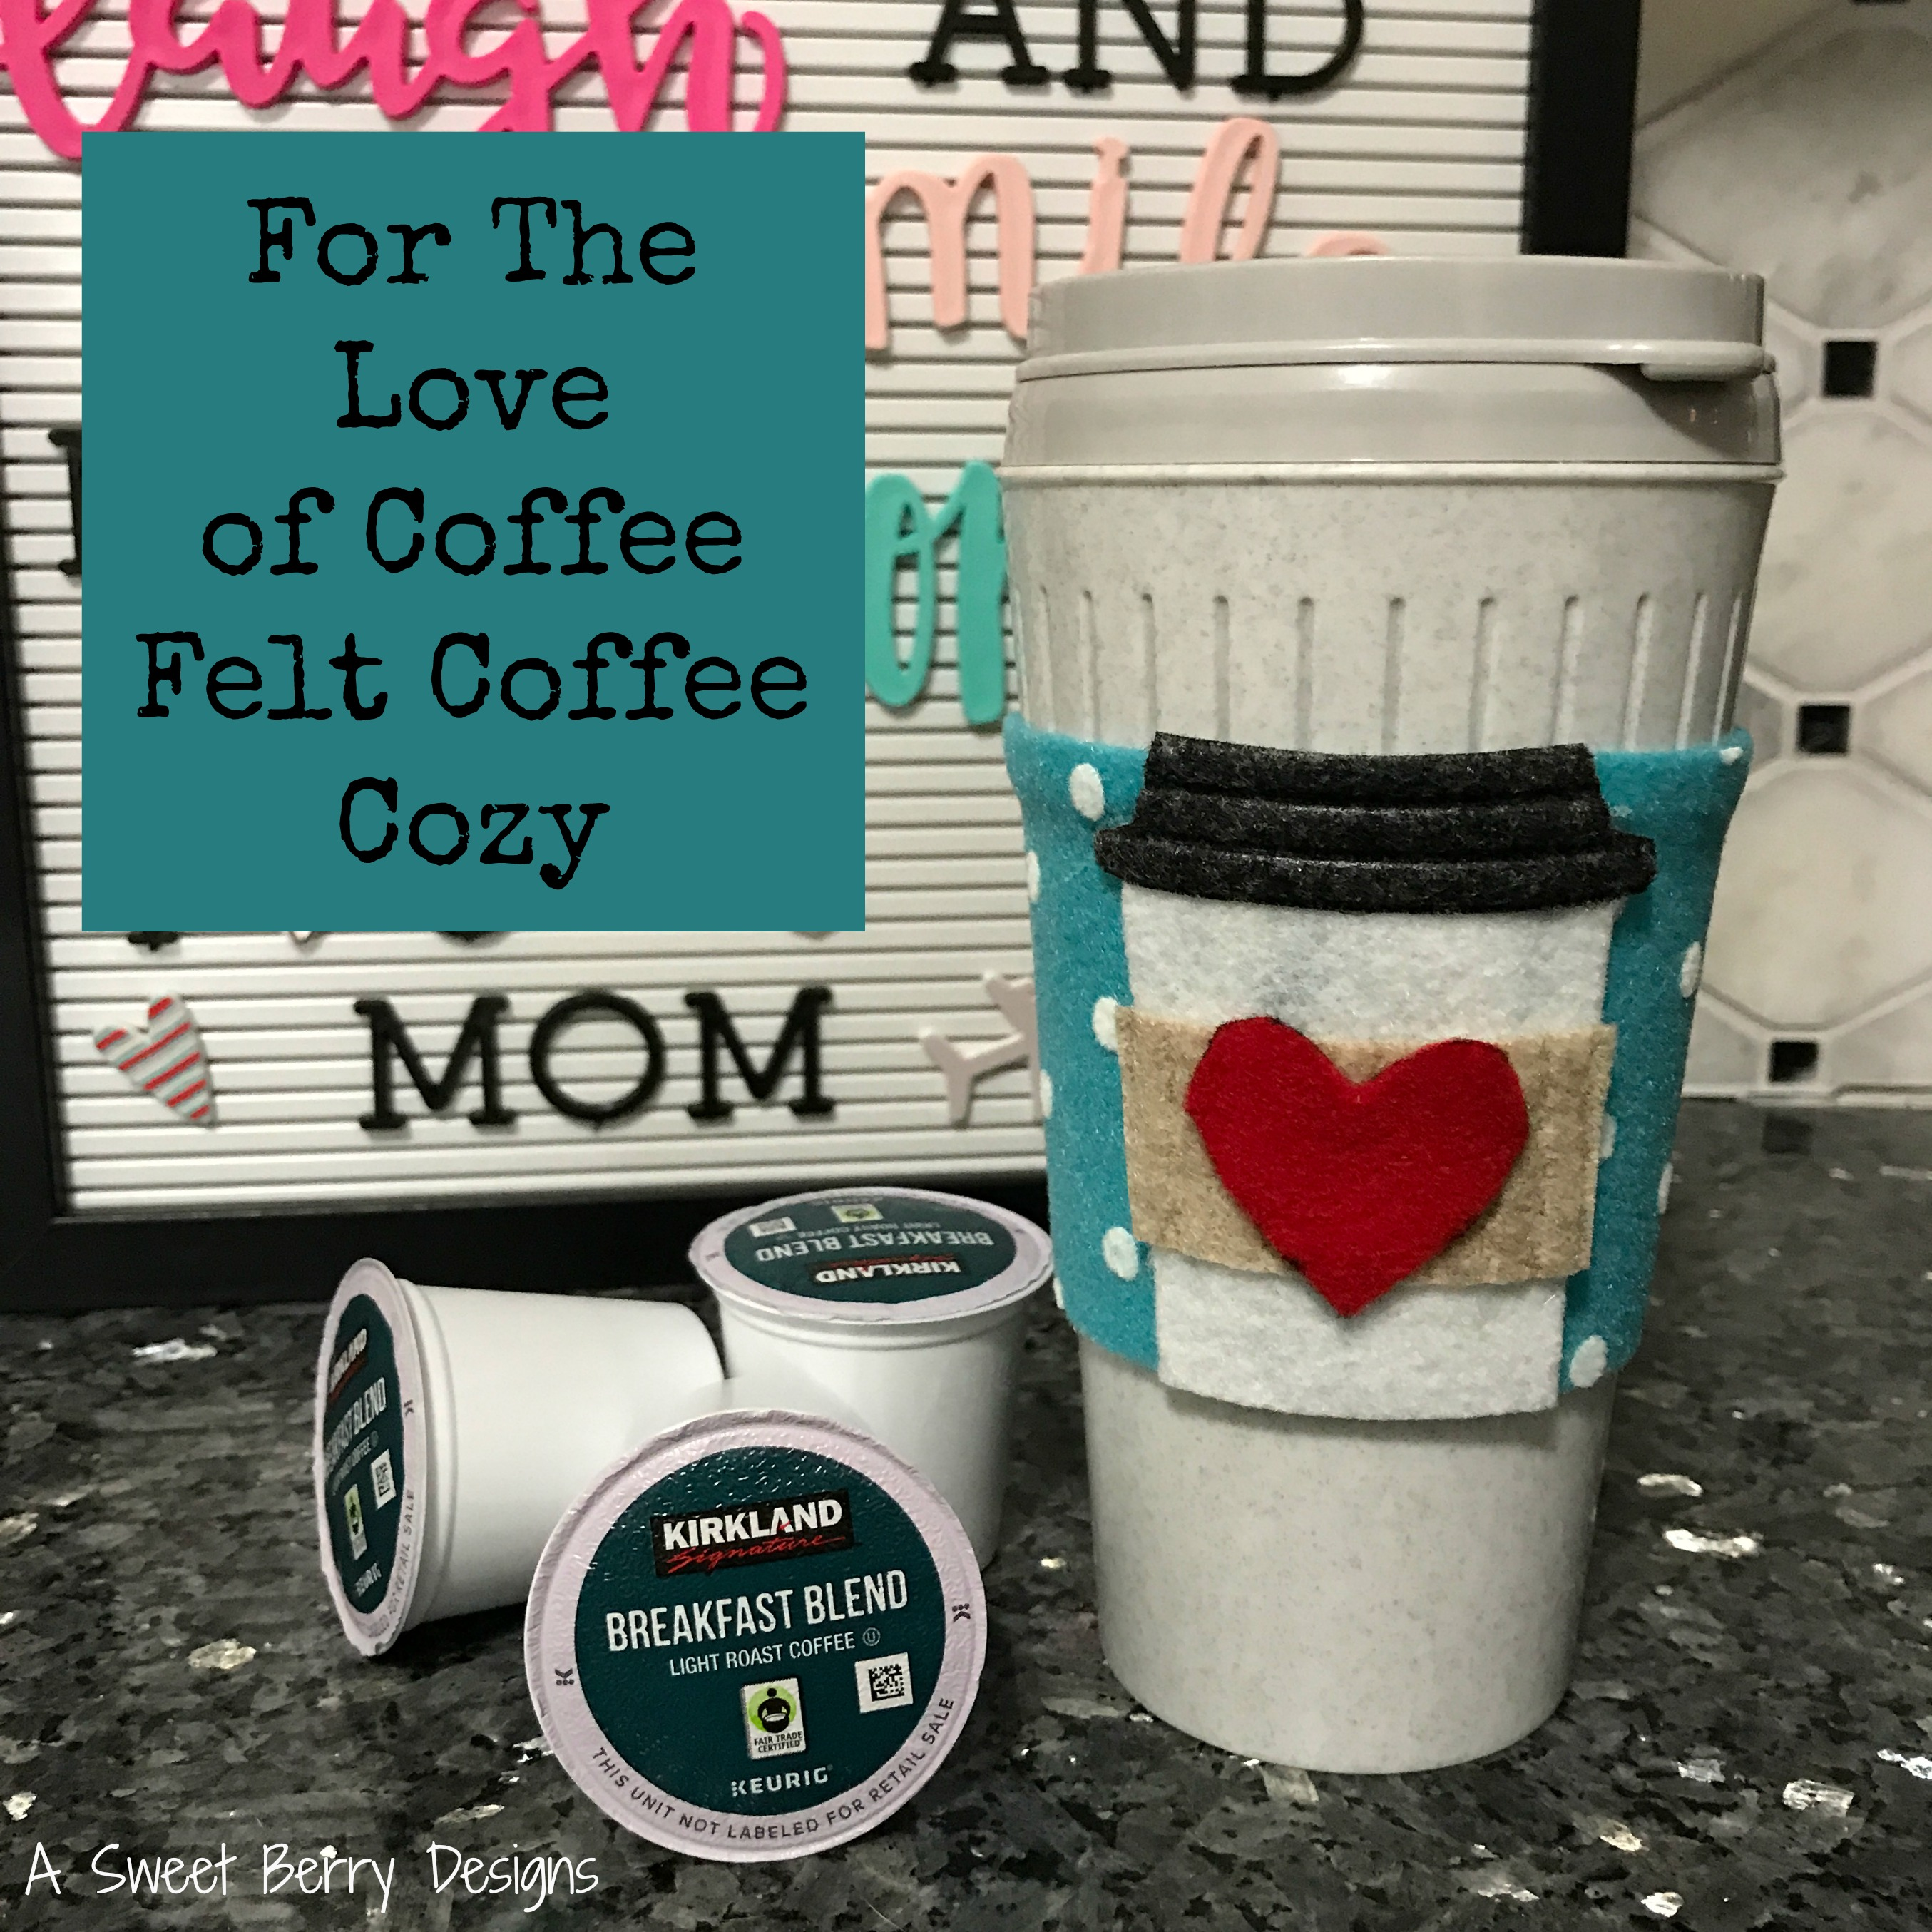 ... It And I Thought That Same Coffee Cup Would Be Super Cute On A Coffee  Cozy. With That, I Made A For The Love Of Coffee Felt Coffee Cozy!!! Check  It Out!